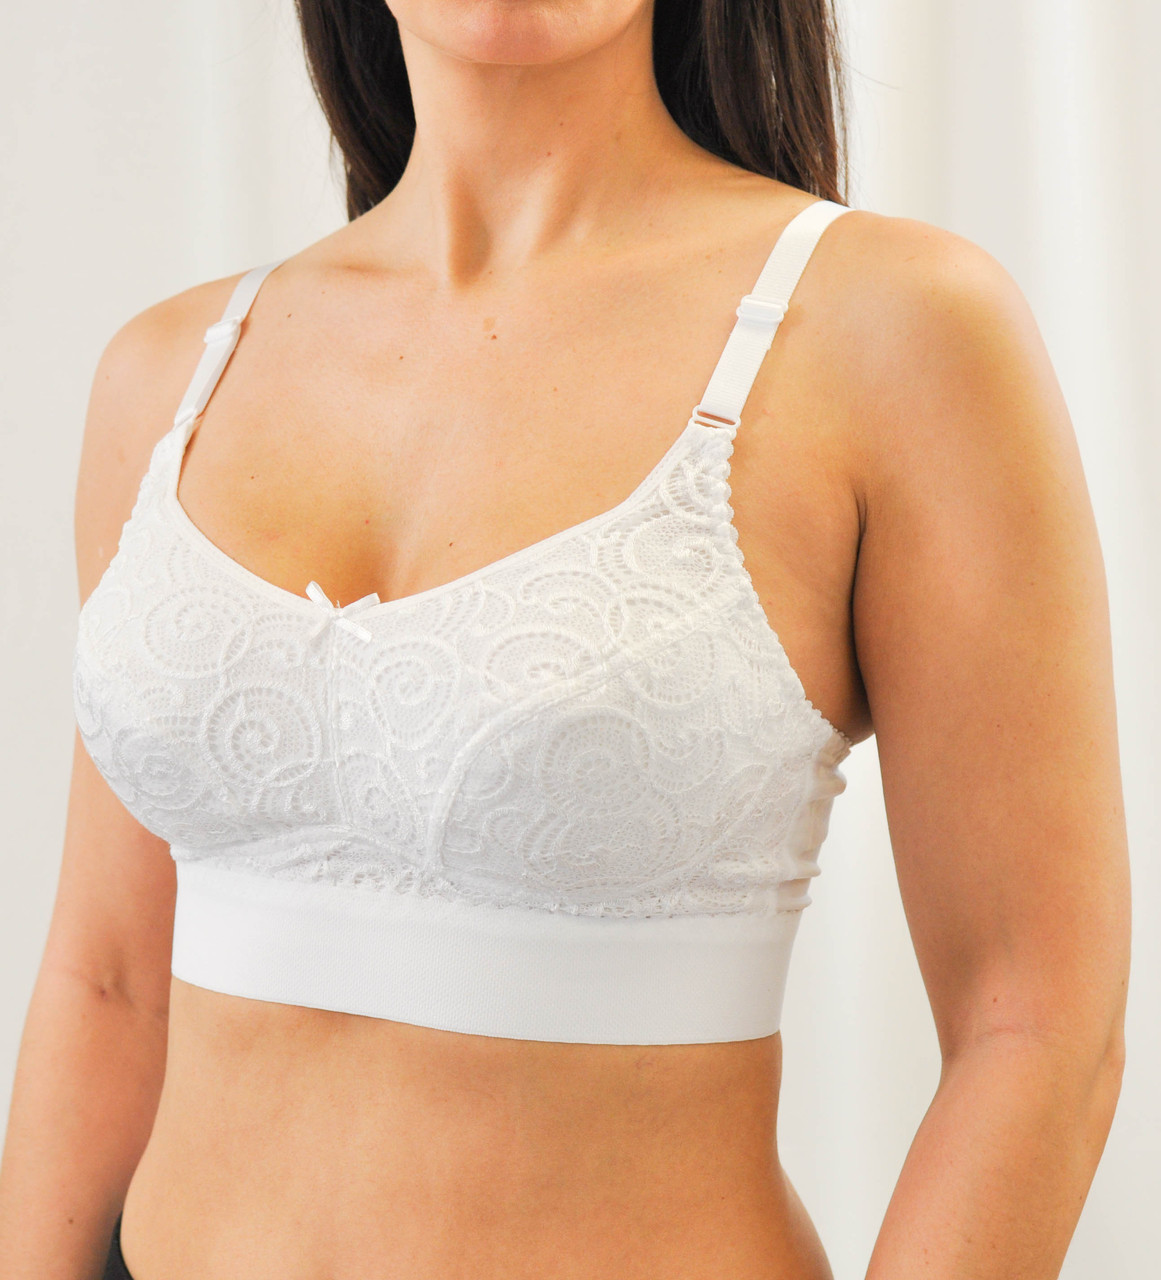 f8216be7bfca0 Nearly Me 5628 Anna Mastectomy Bra - MastectomyShop.com